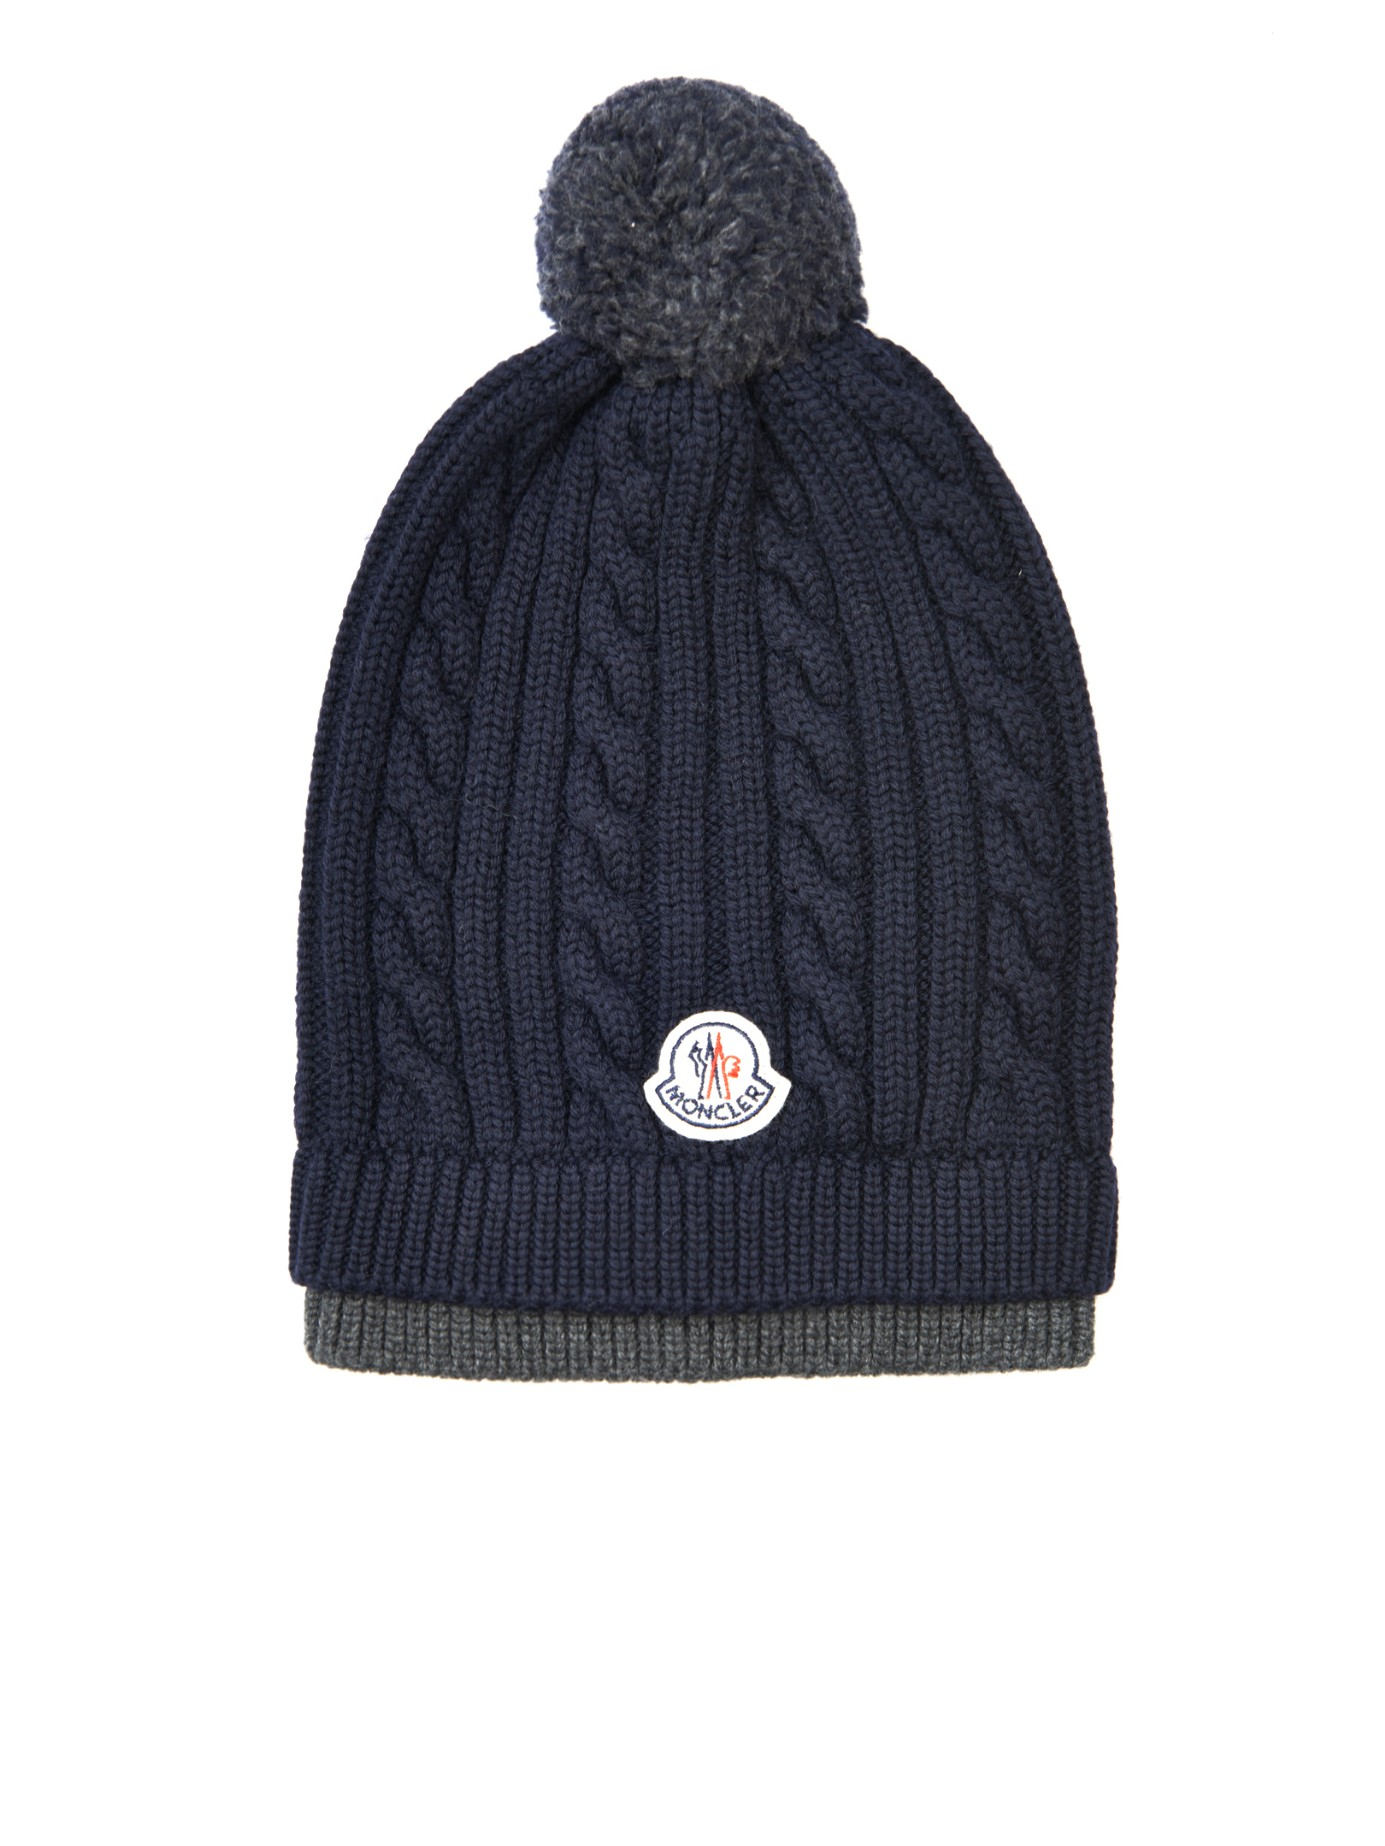 Moncler Cable-Knit Wool Beanie Hat in Blue for Men - Lyst 5b7c24528bef